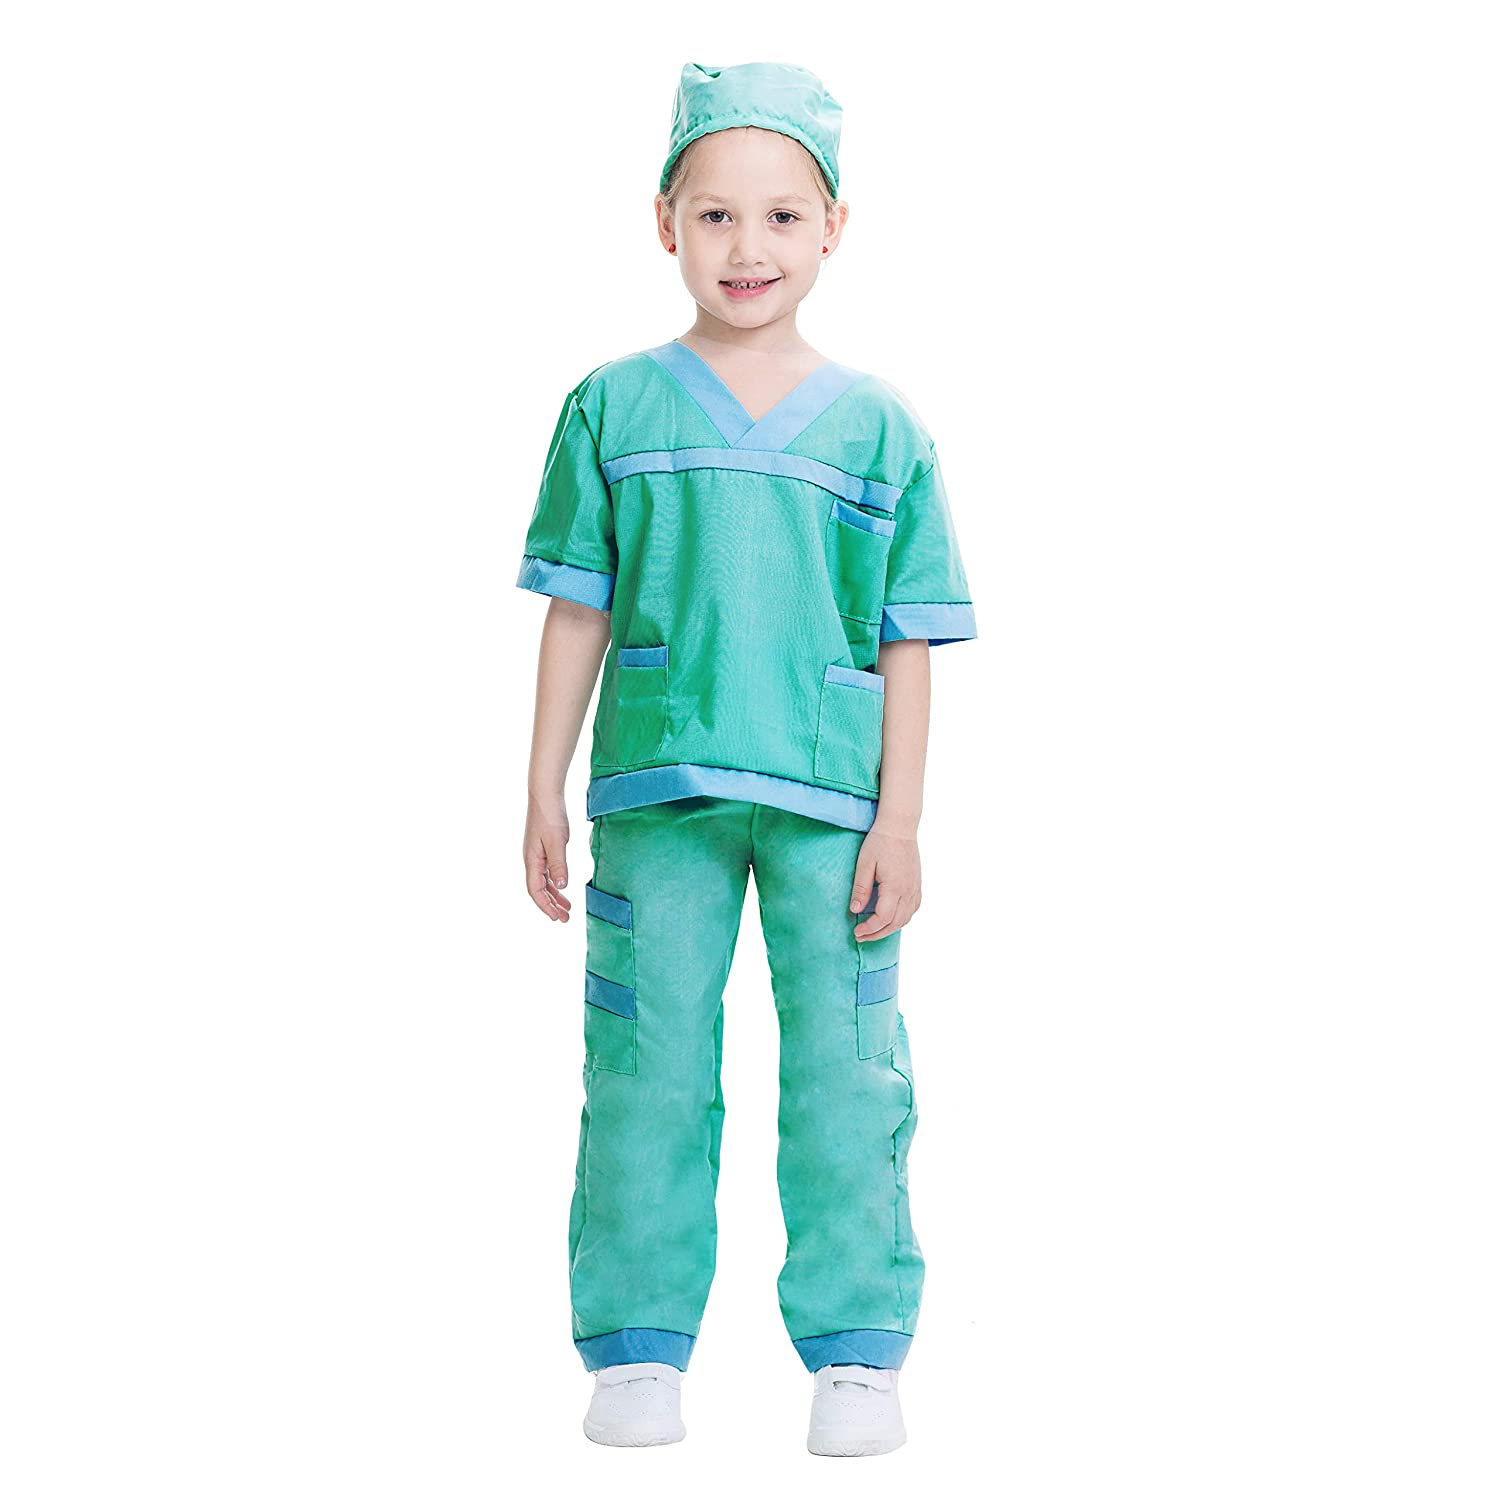 66fead2e465c5 Amazon.com: Dr. Scrubs Deluxe Kids Toddler Vet Costume Set in Green for  Scrub's Pretend Play, Halloween Jr. Doctor Dress Up Party: Clothing